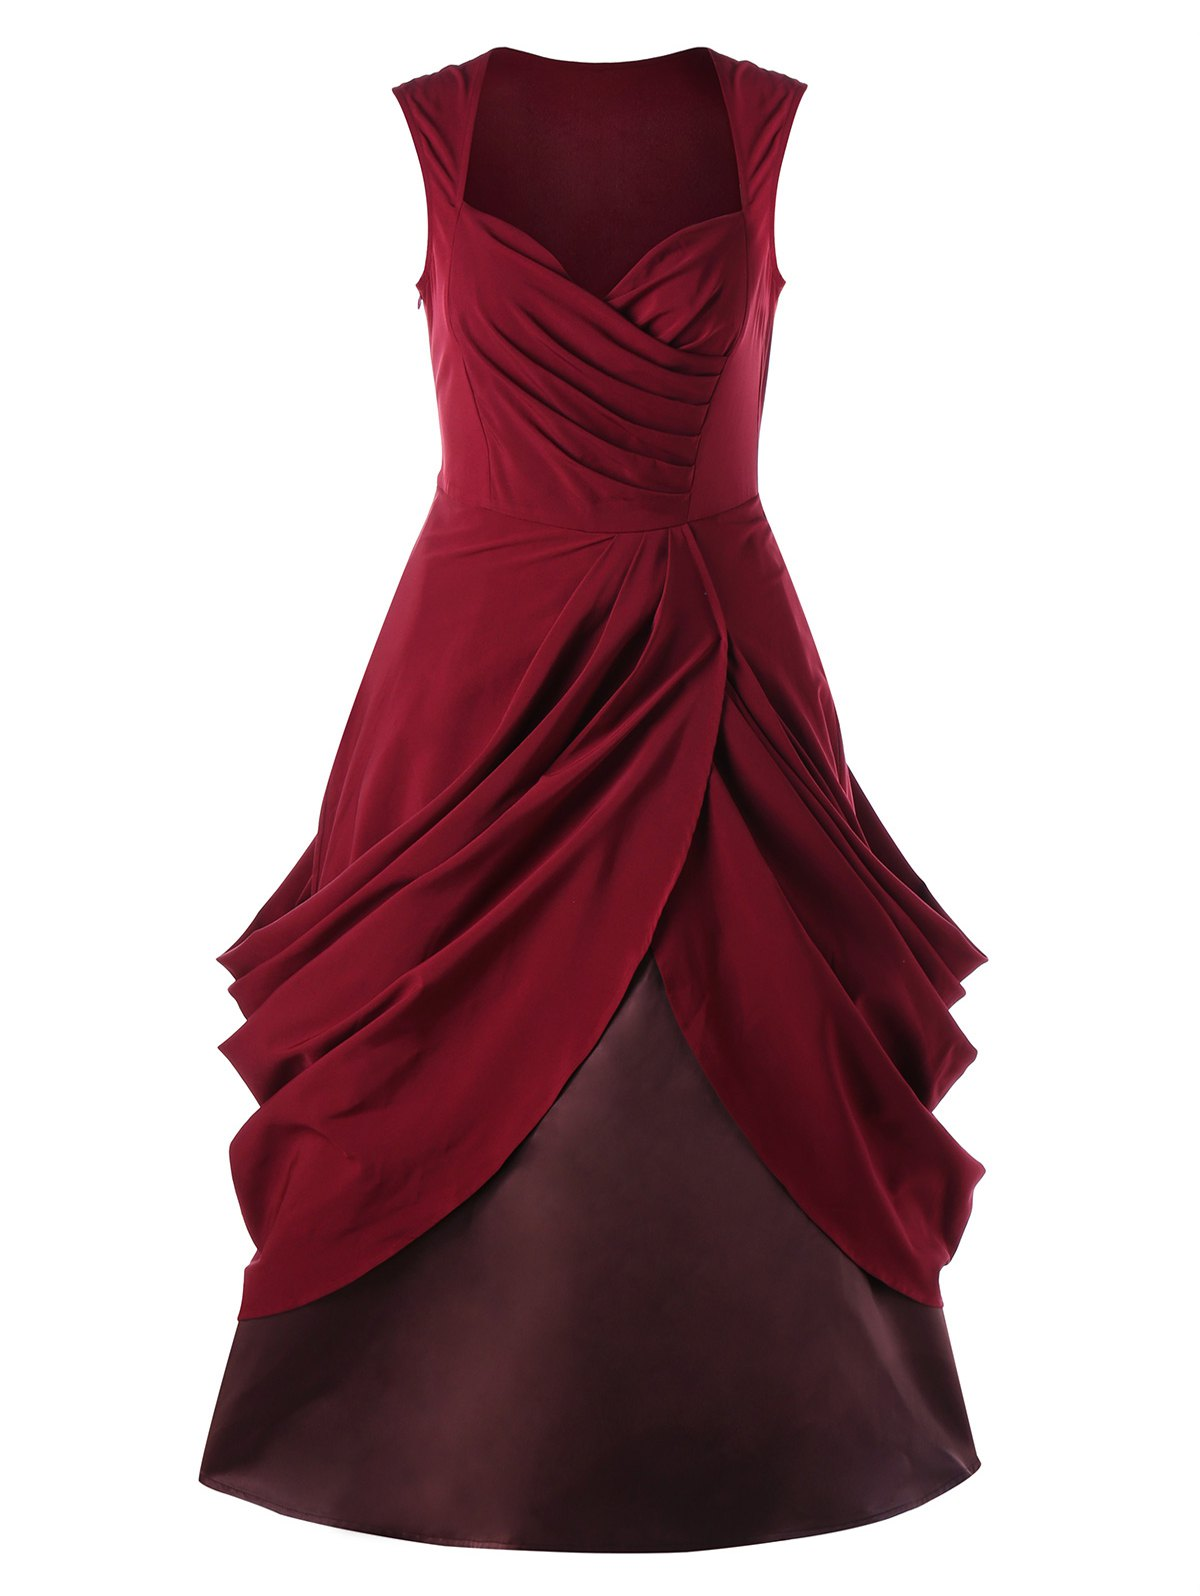 Ruched Vintage Sweetheart Party A Line DressWOMEN<br><br>Size: 2XL; Color: RED; Style: Vintage; Material: Polyester; Silhouette: A-Line; Dresses Length: Knee-Length; Neckline: Sweetheart Neck; Sleeve Length: Sleeveless; Pattern Type: Solid; With Belt: No; Season: Spring,Summer; Weight: 0.6850kg; Package Contents: 1 x Dress;